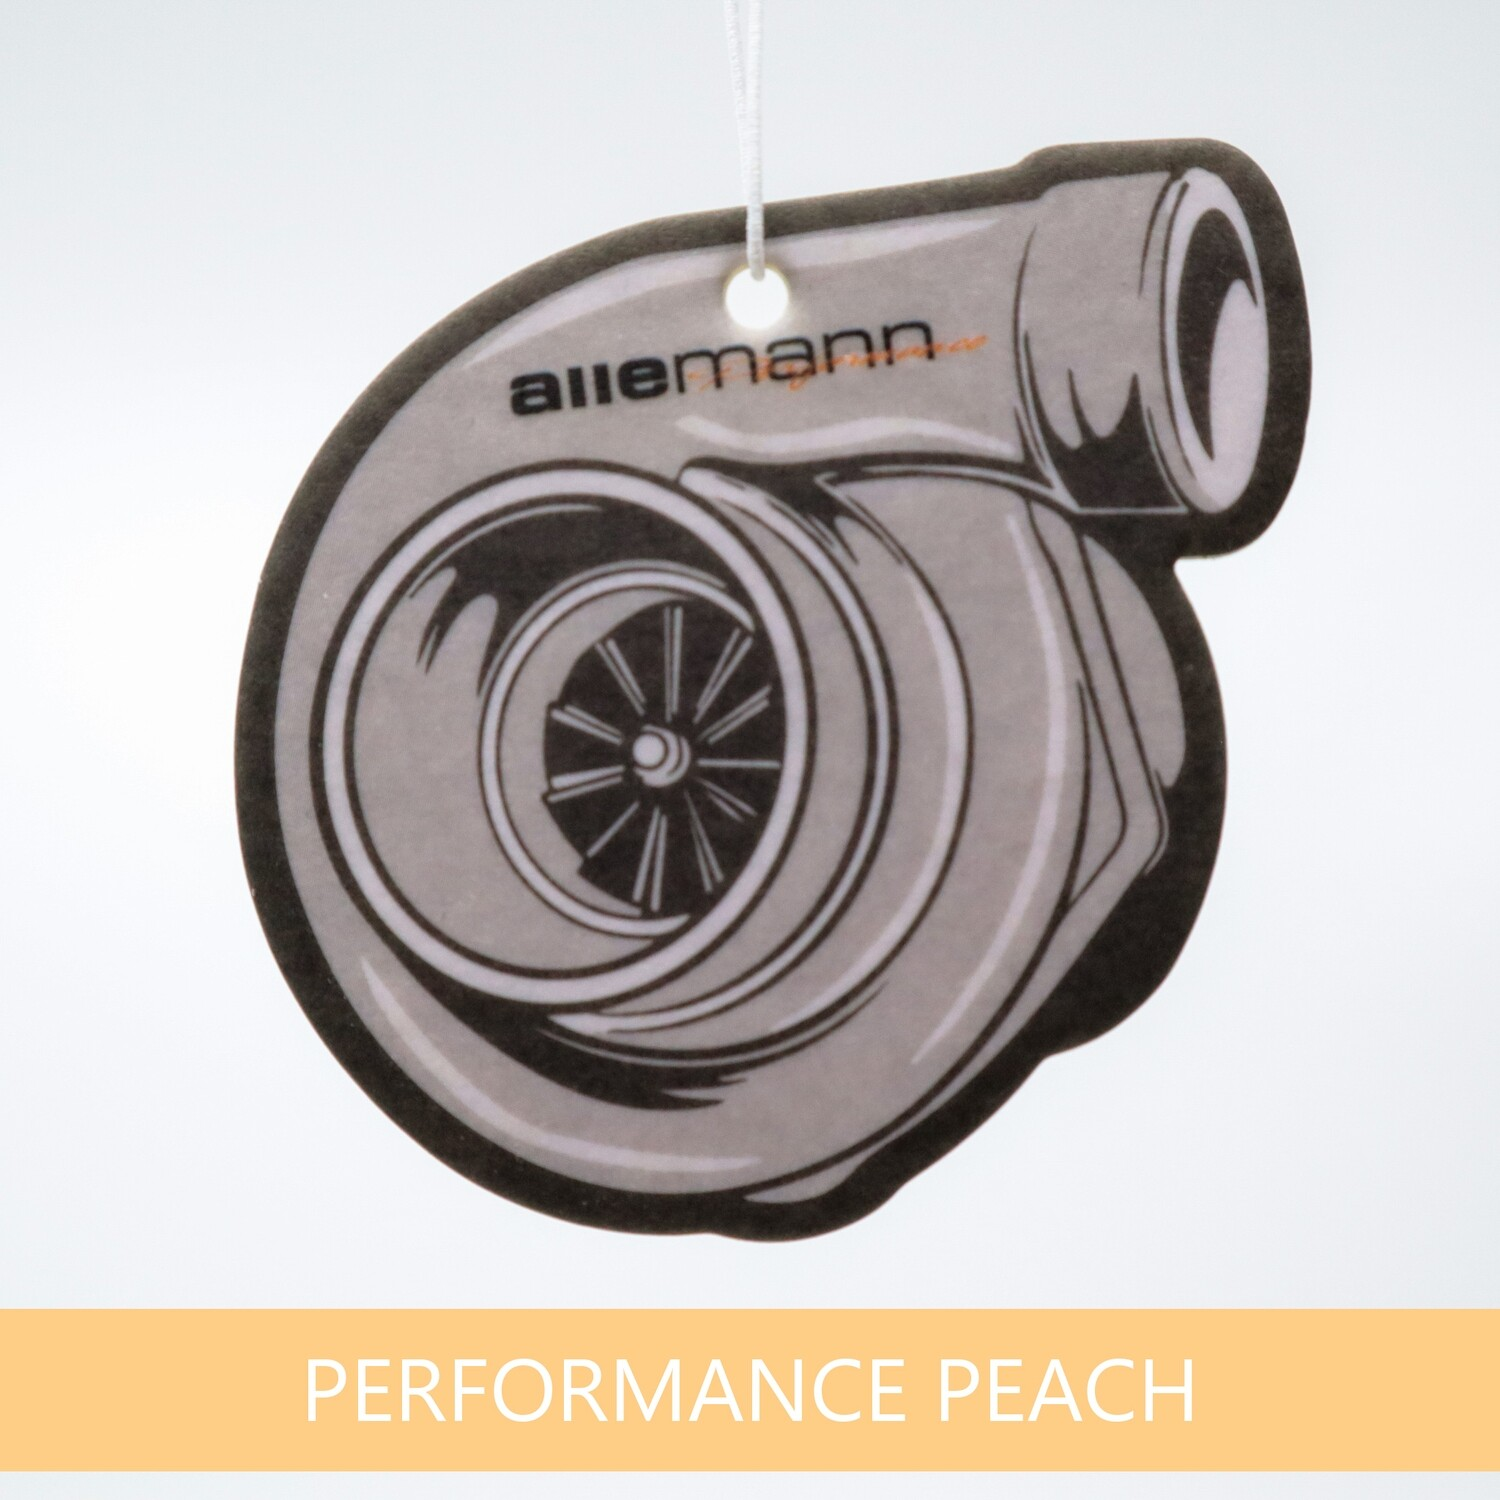 Allemann Turbo Duftbaum Air Freshener Peach